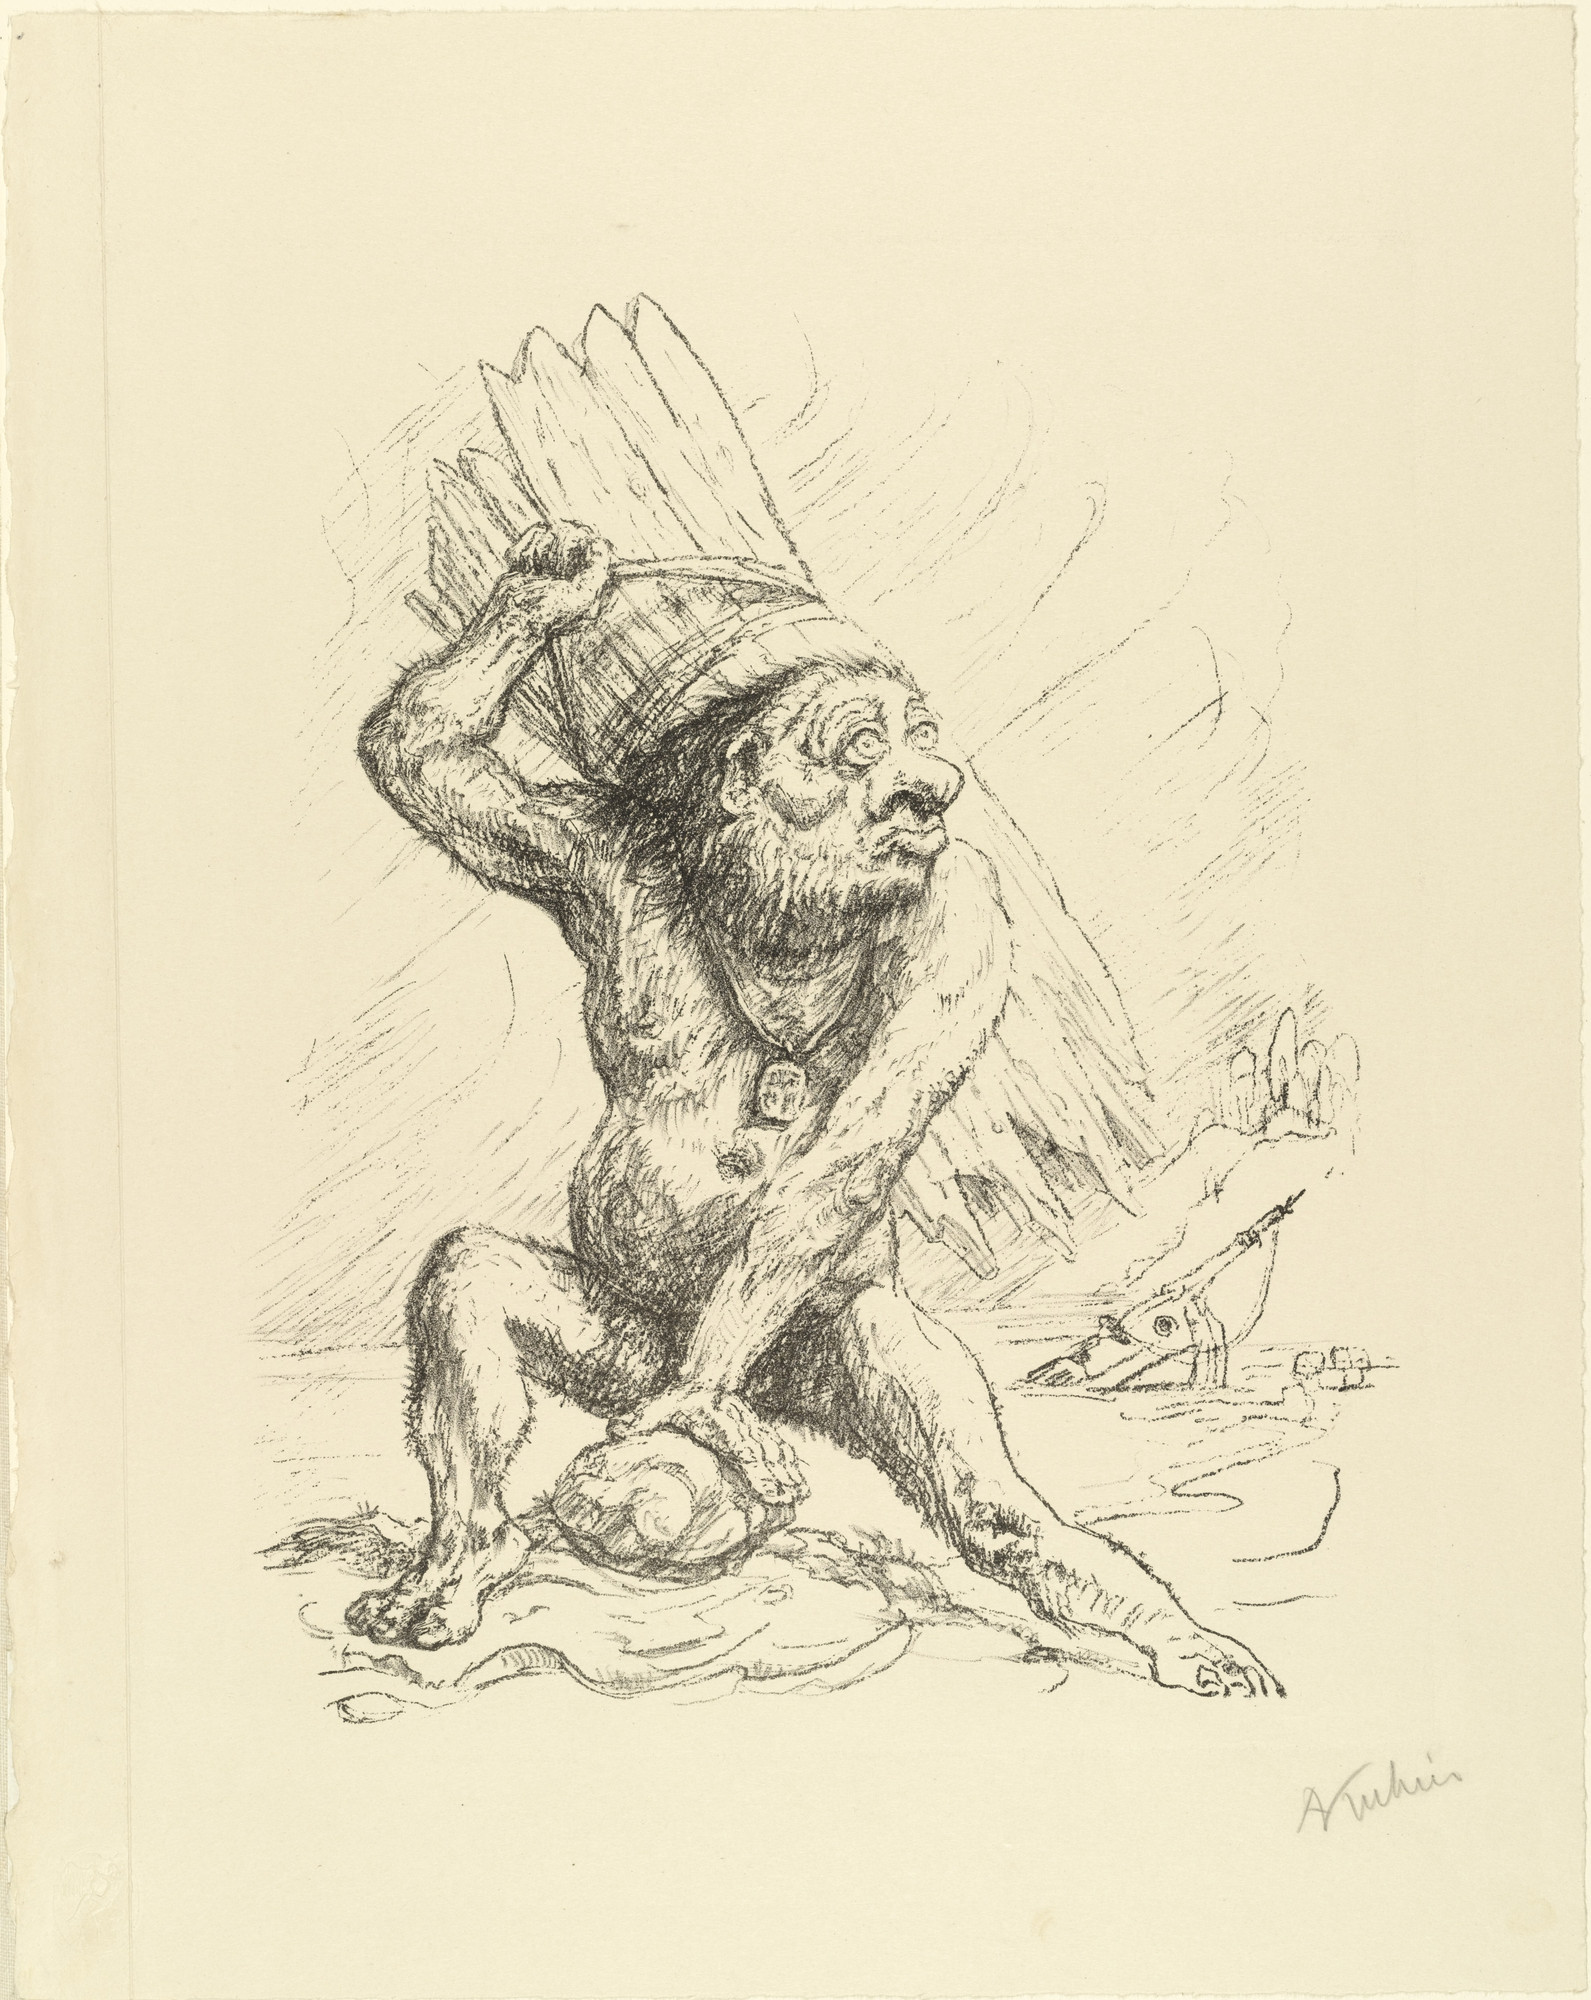 Alfred Kubin. Caliban from the portfolio Visions of Shakespeare (Shakespeare Visionen). (1918)